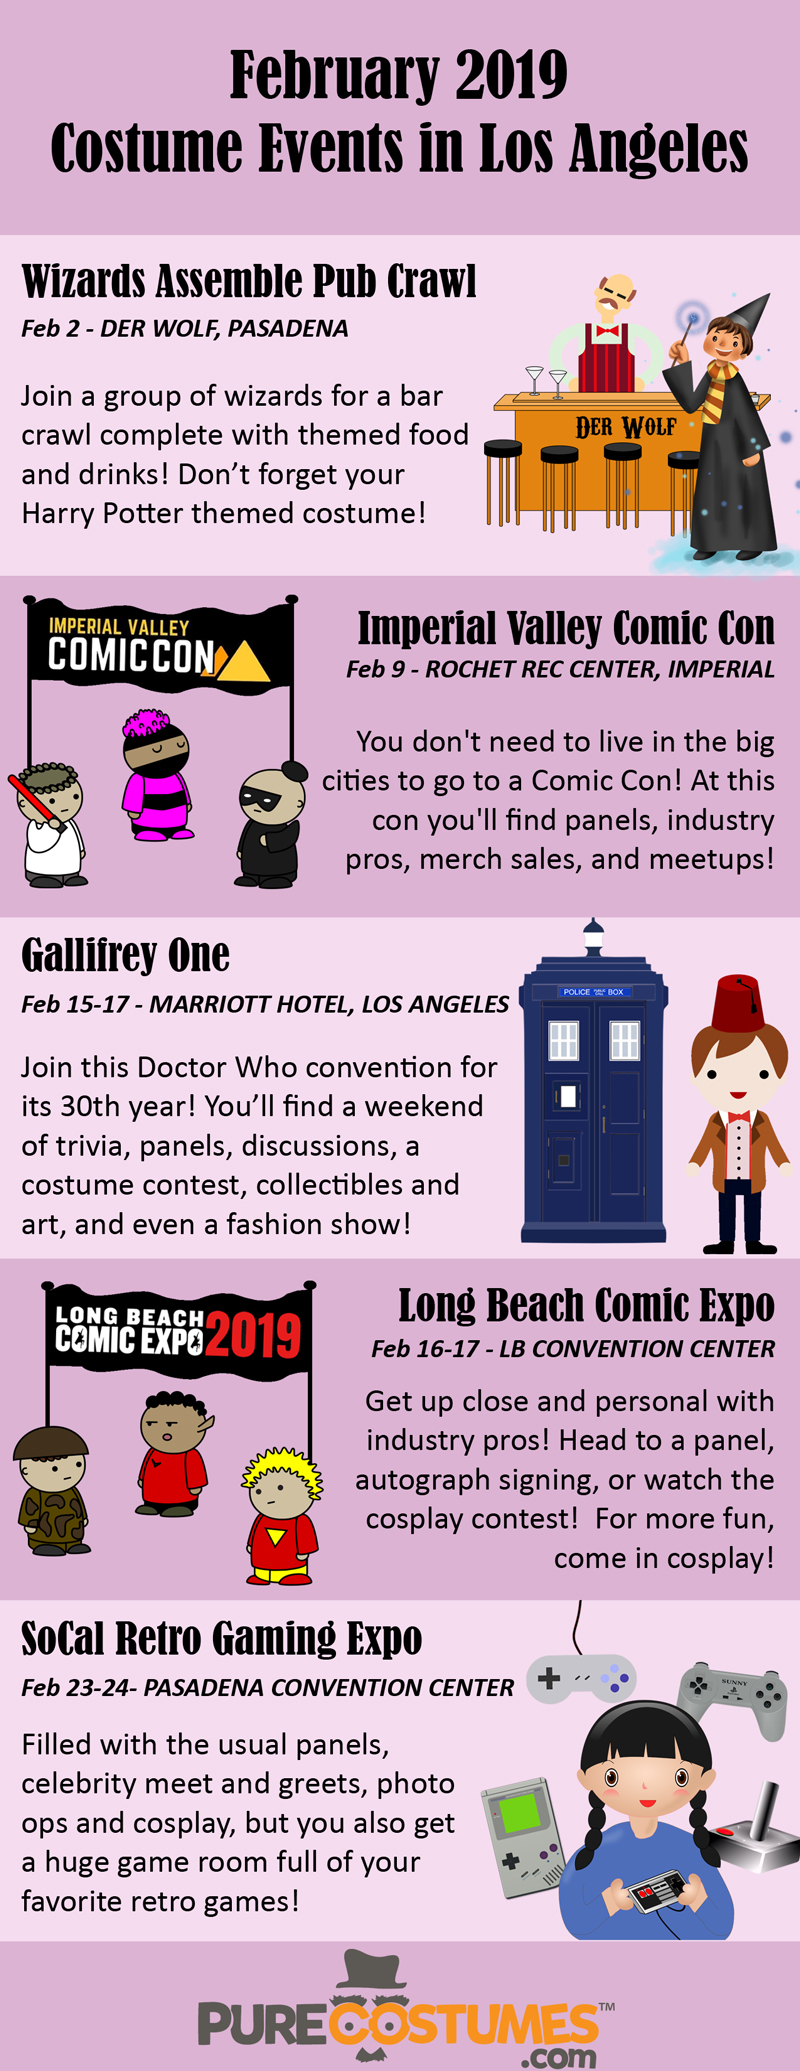 Los Angeles Area Costume Events February 2019